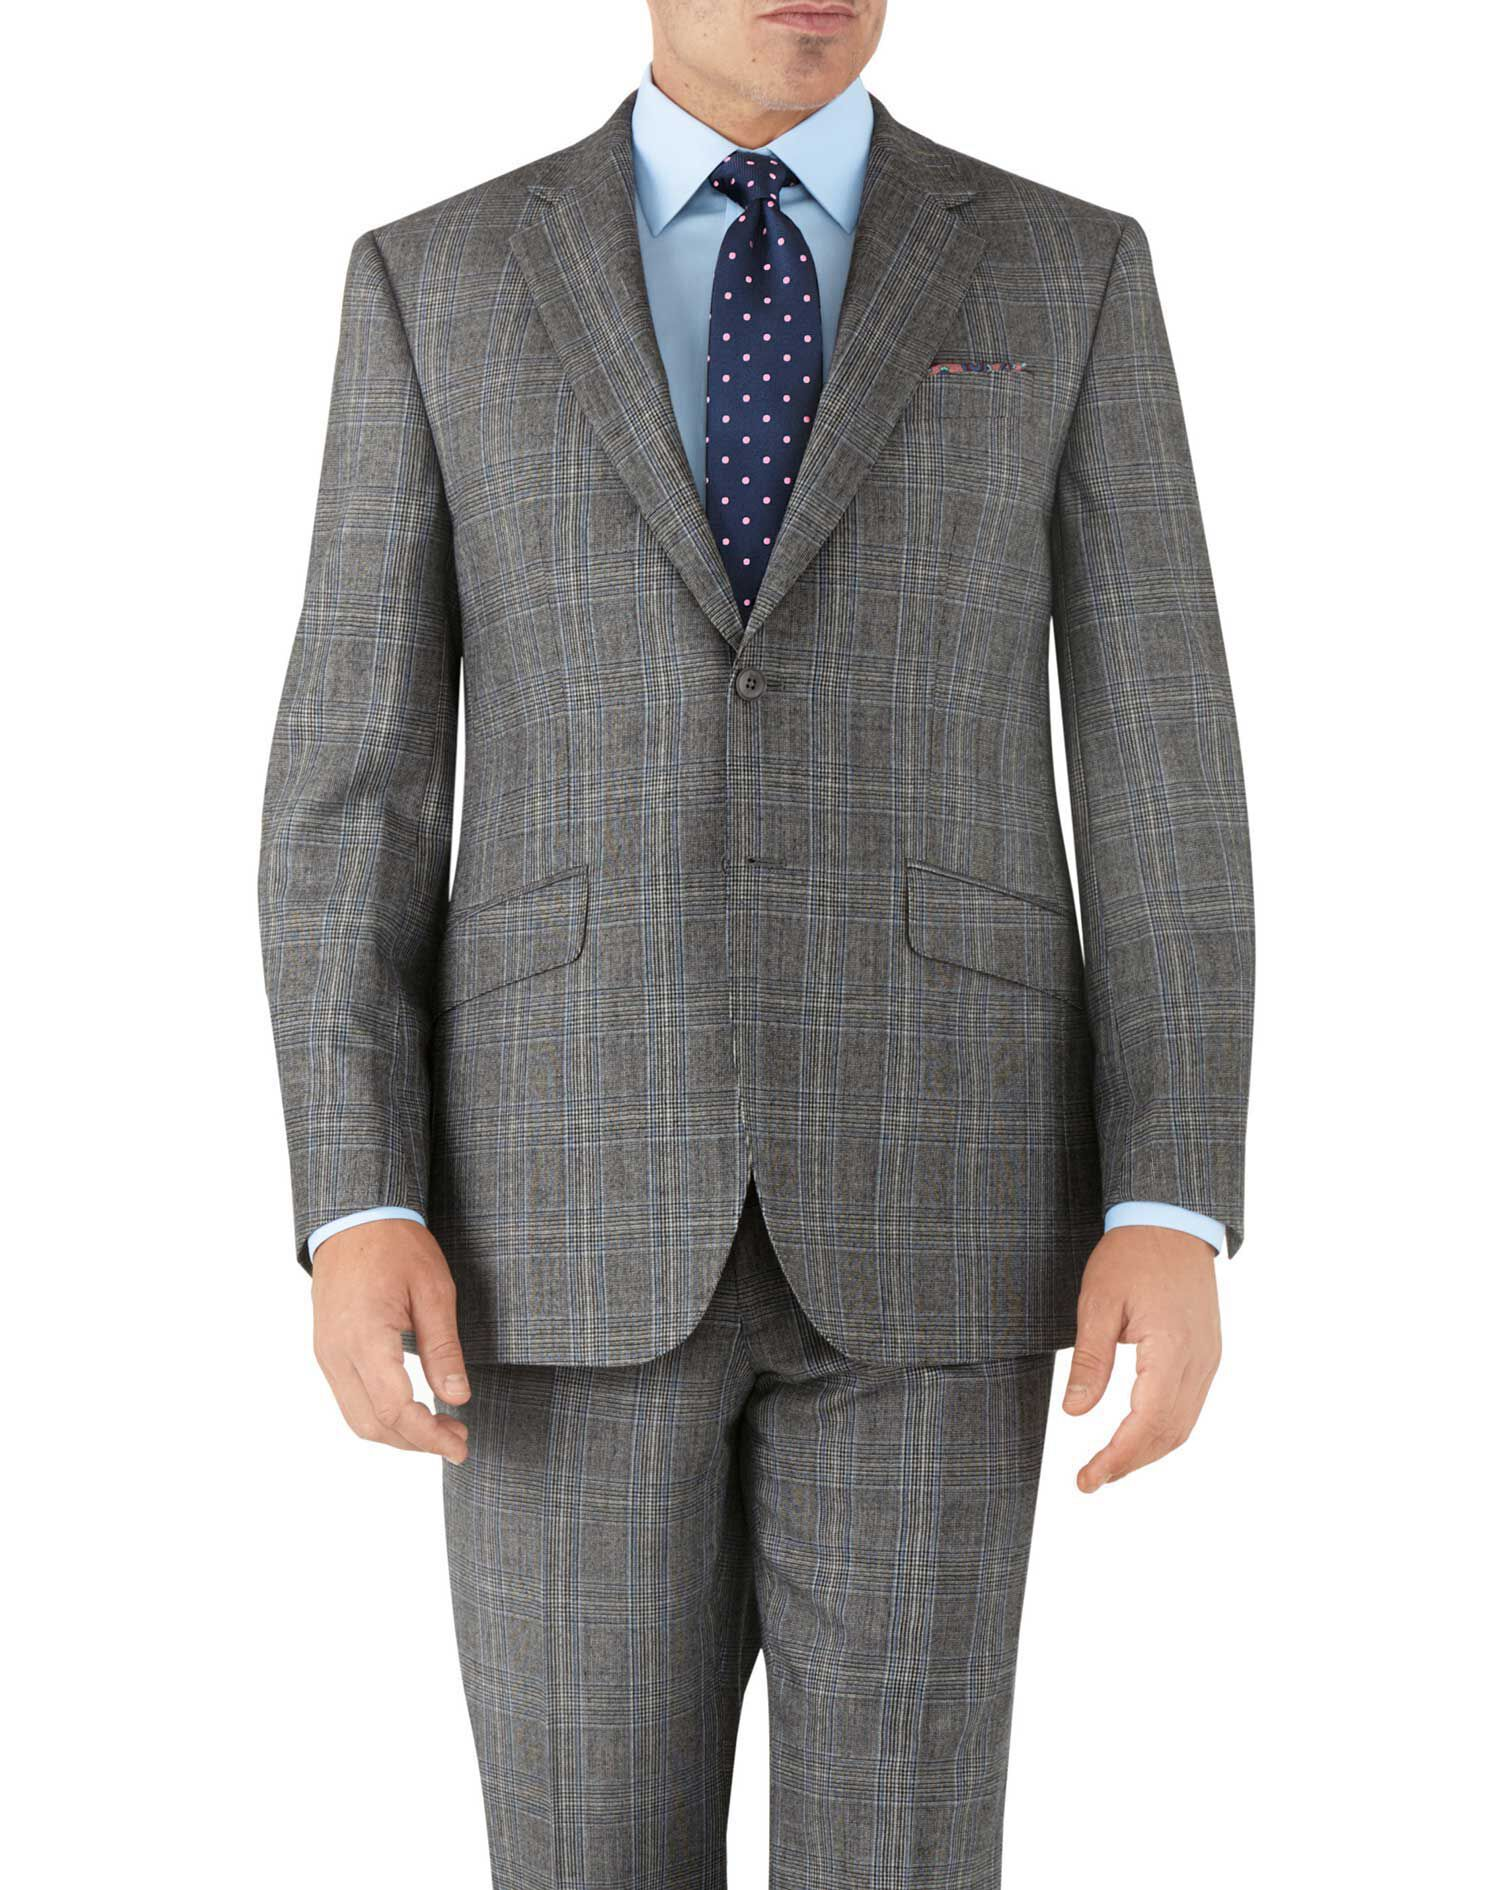 Silver Prince Of Wales Classic Fit Flannel Business Suit Wool Jacket Size 38 Short by Charles Tyrwhi